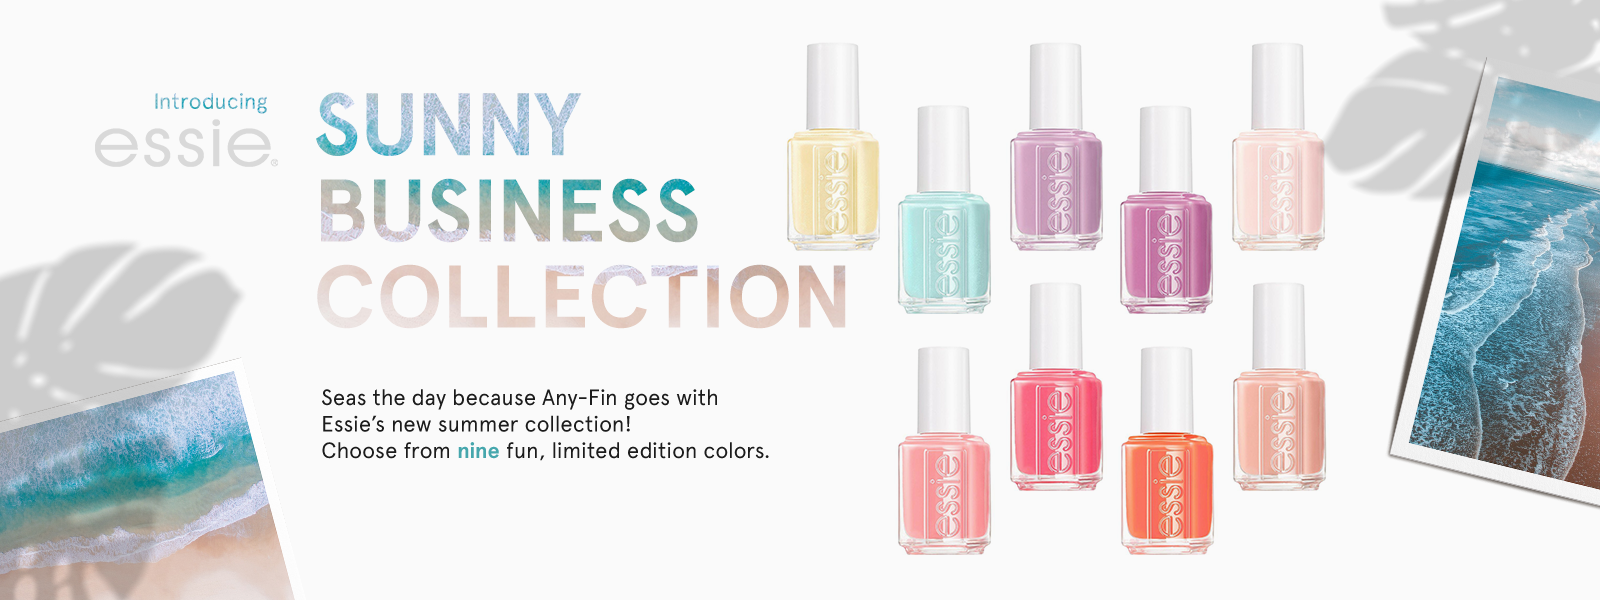 https://www.vente-beaute.com/560-essie-sunny-business-collection-ete-2020